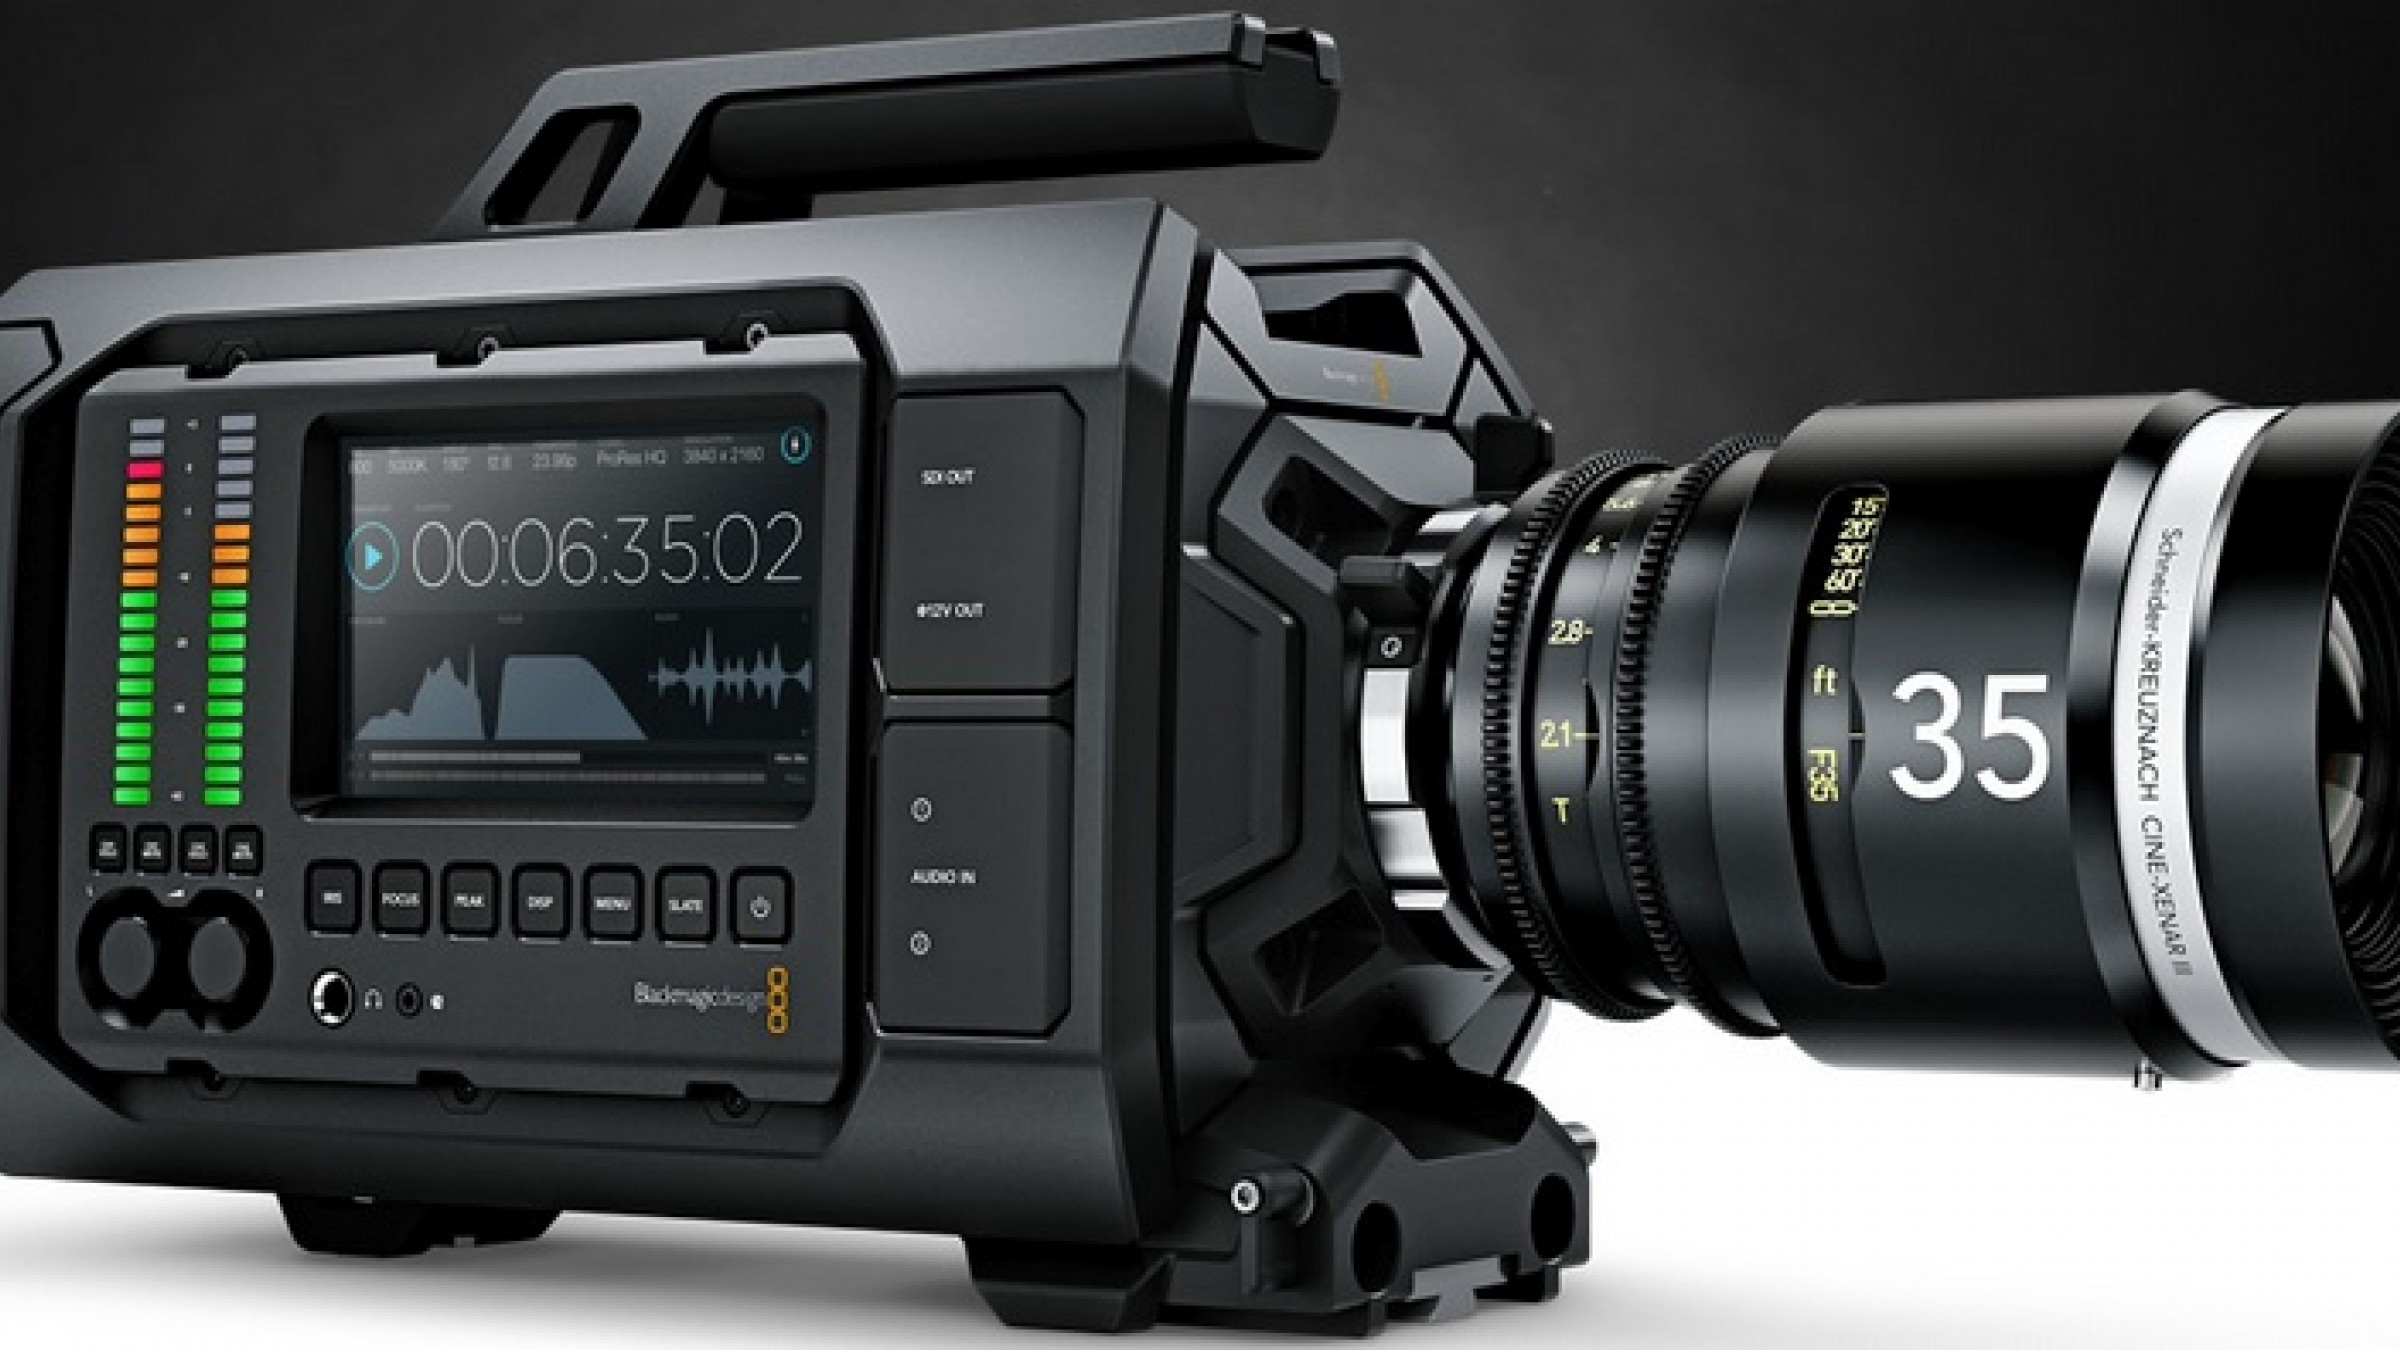 New Blackmagic URSA Firmware Adds 150fps Recording & Support for New ...